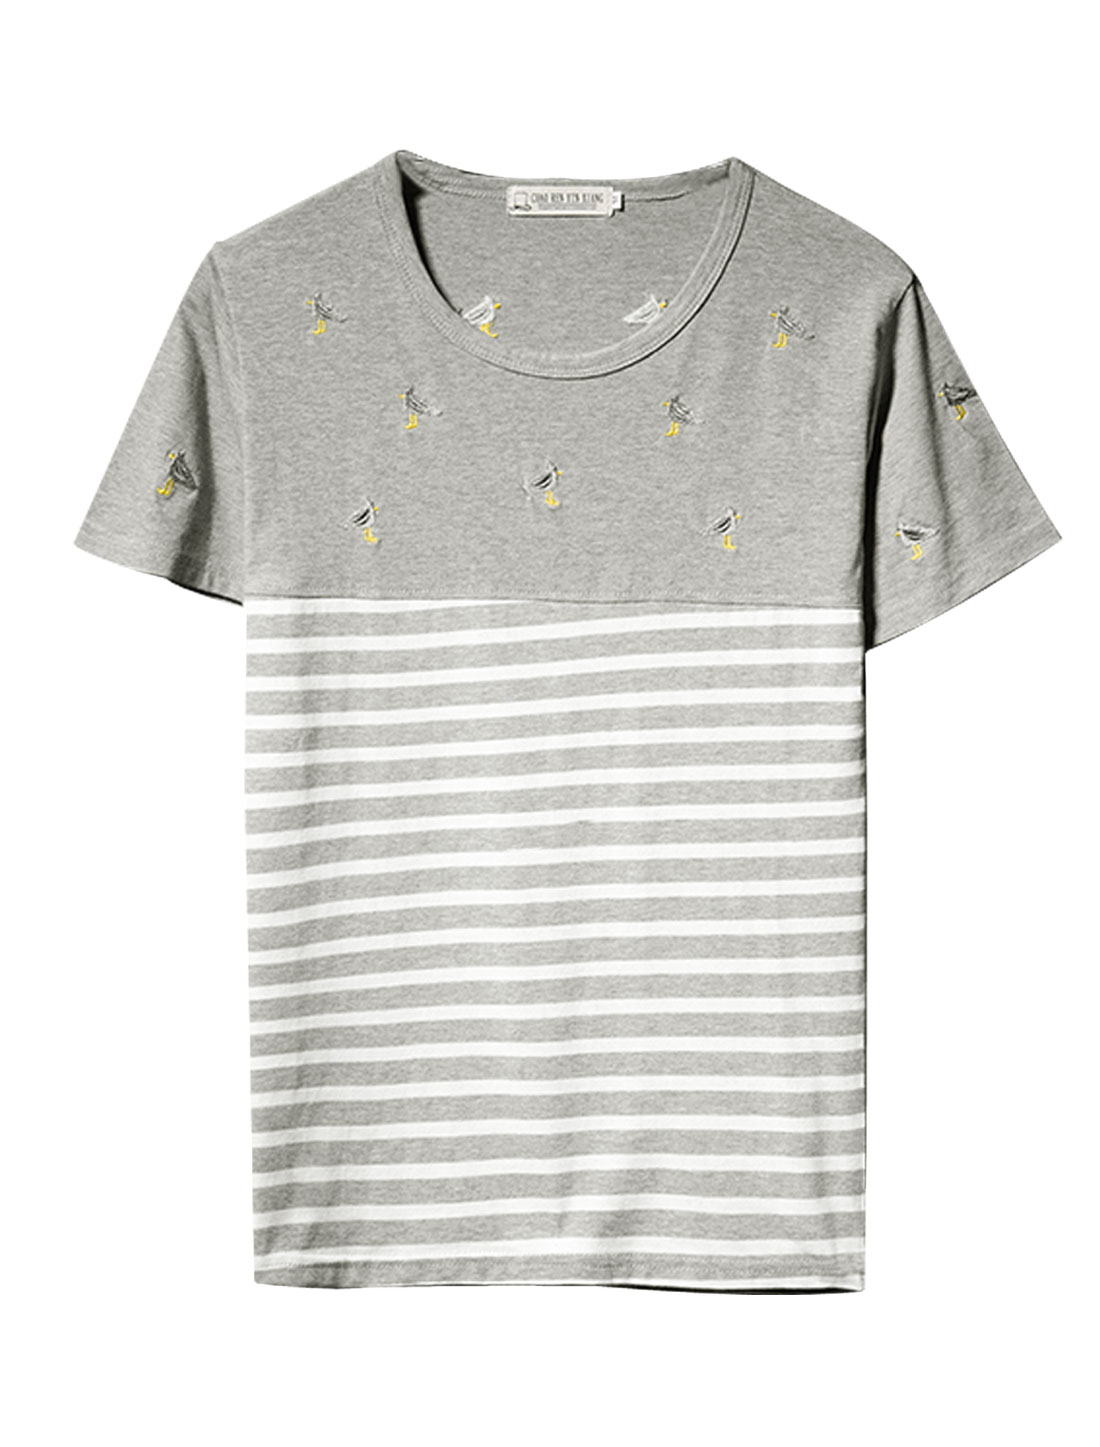 Men Summer Short Sleeve Bar Striped Casual T-Shirt Light Gray M